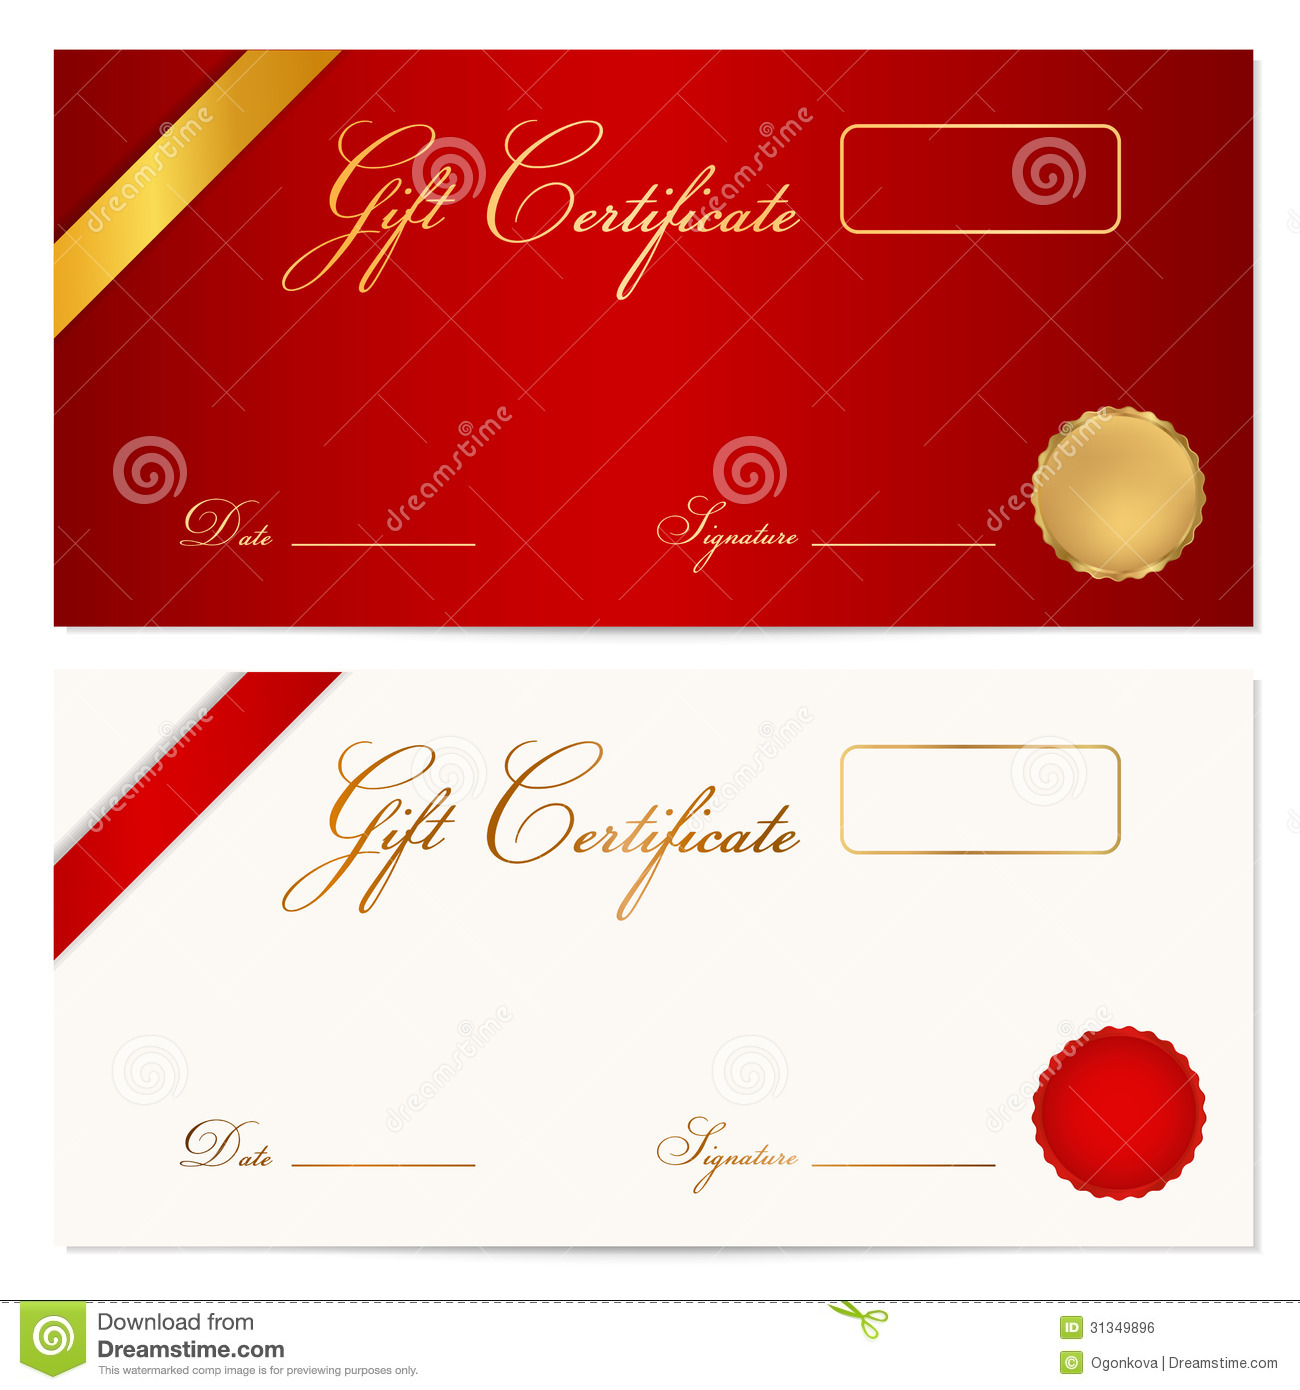 Gift certificate voucher template wax seal stock vector image royalty free stock photo download gift certificate voucher template yelopaper Gallery